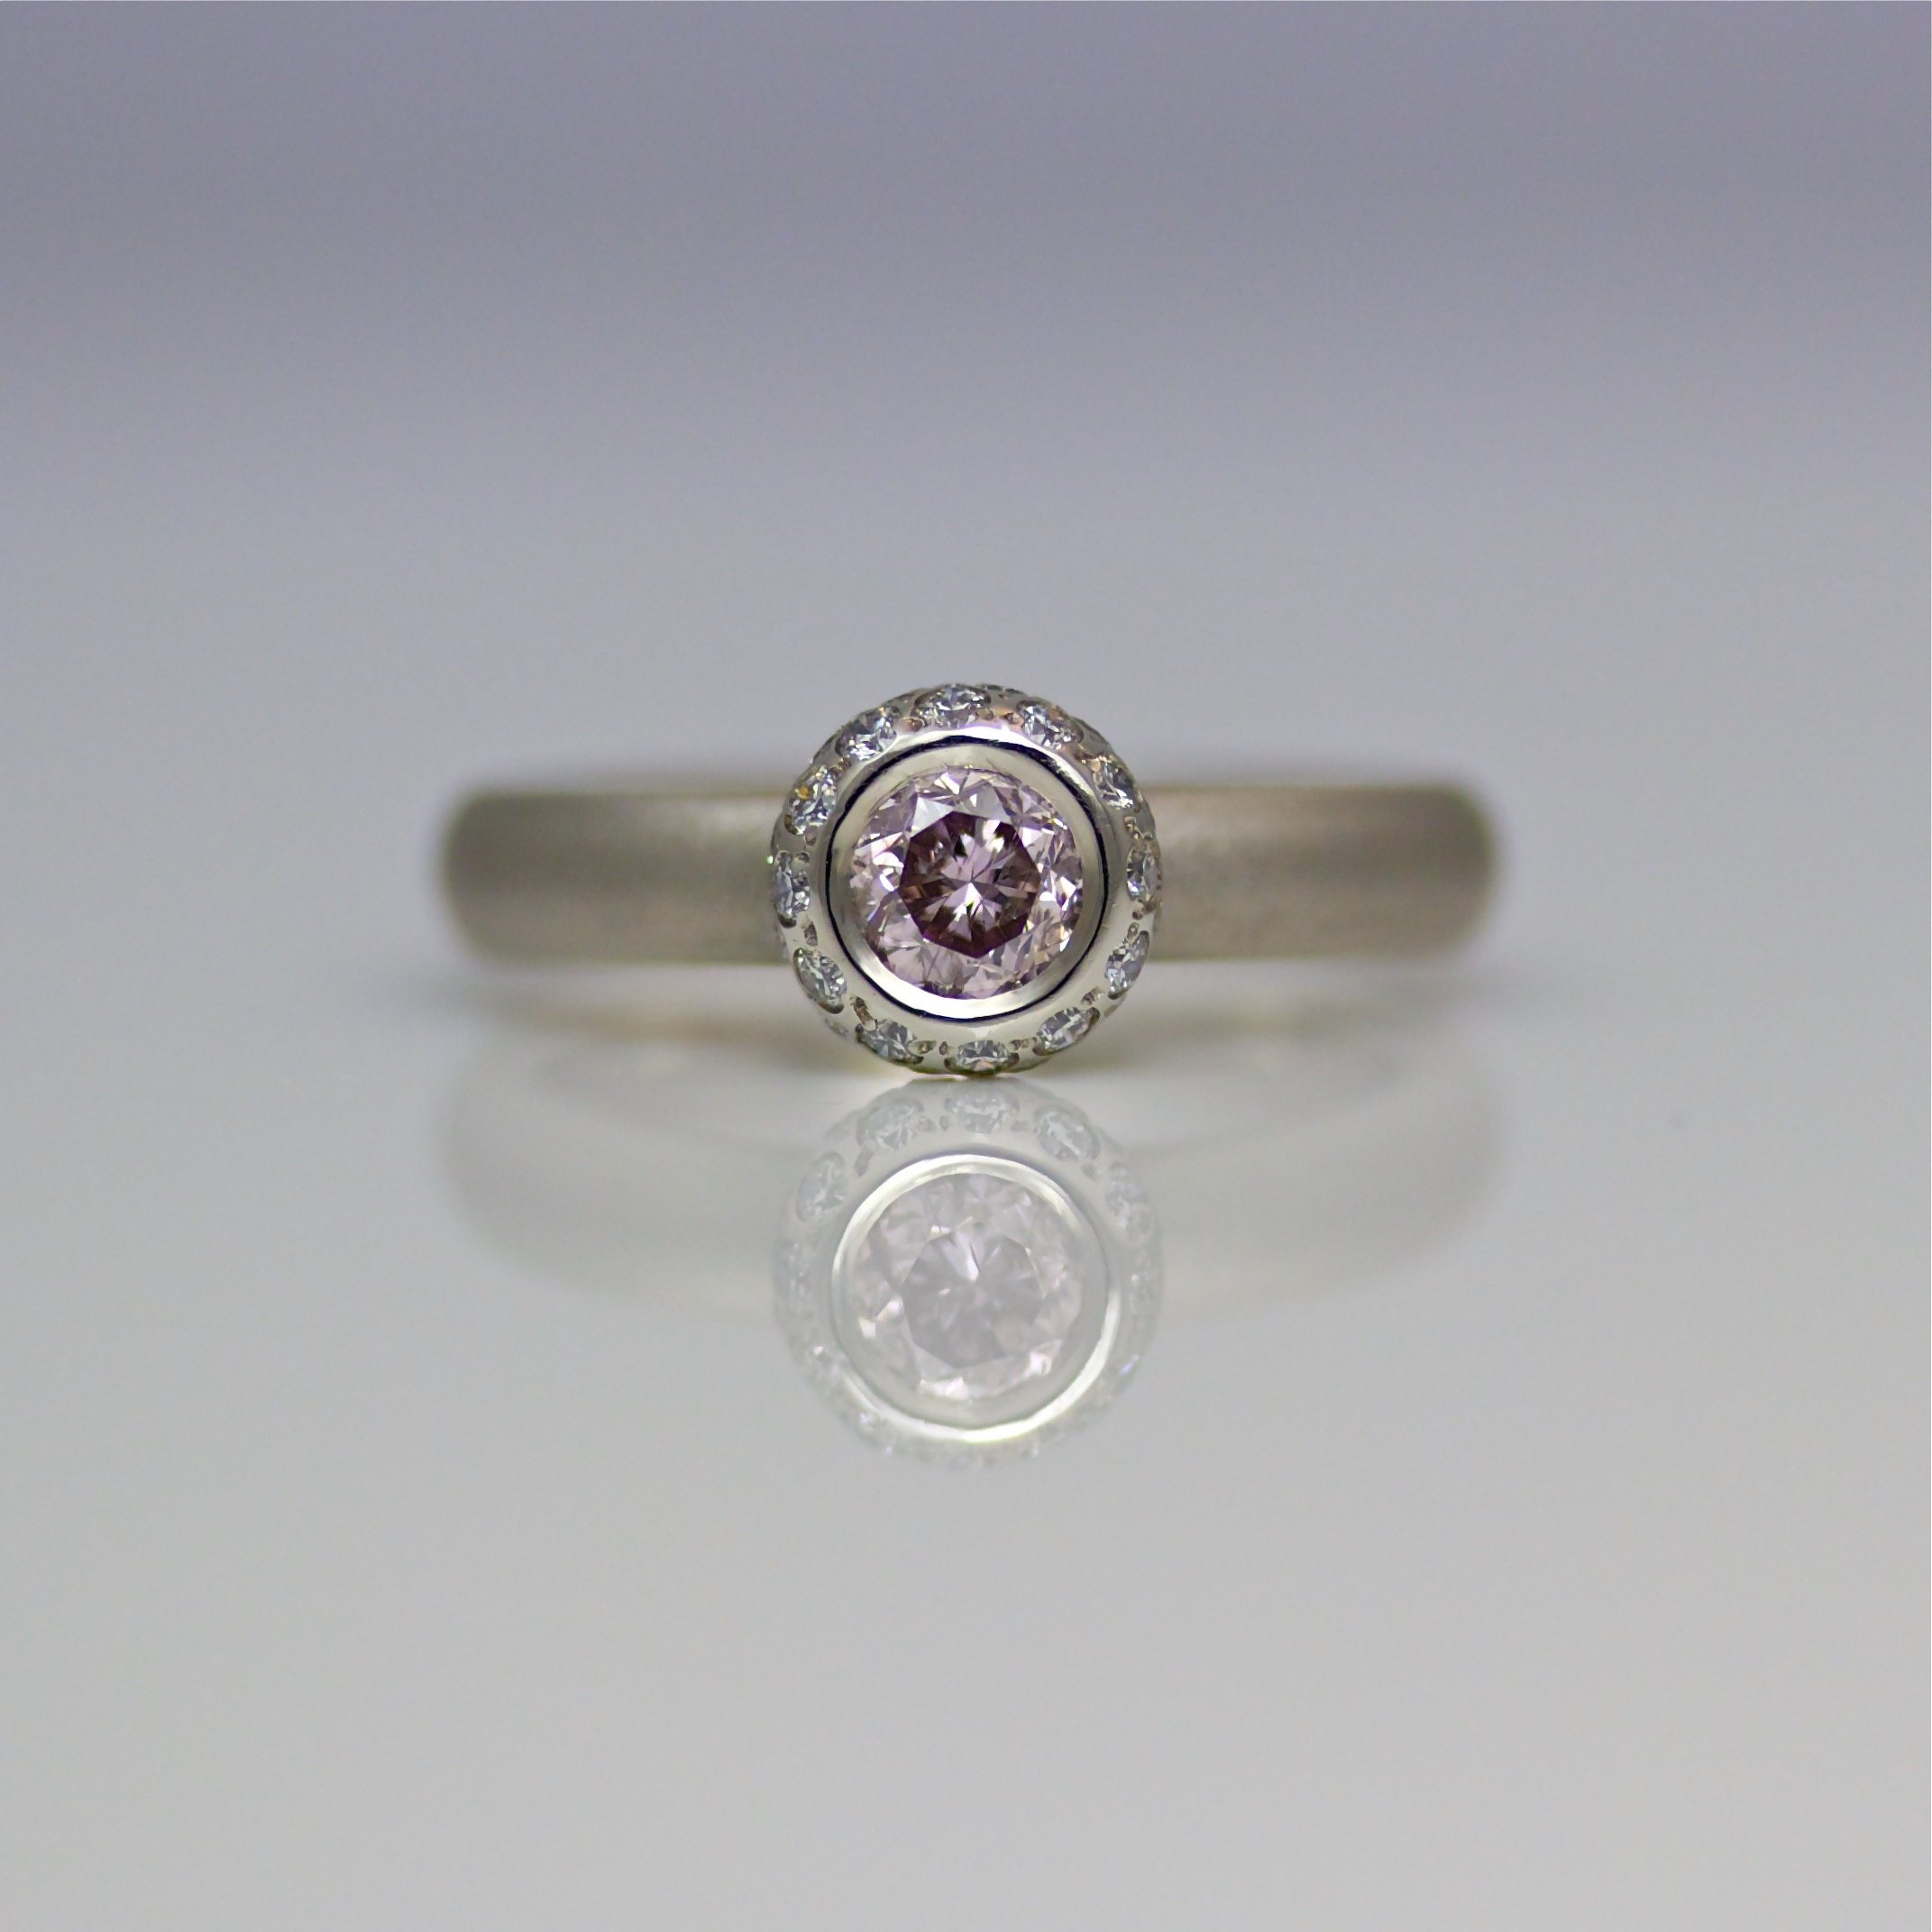 mera engagement ring natural purplish jewelry radiant colored nicole pink diamond fancy stone rings